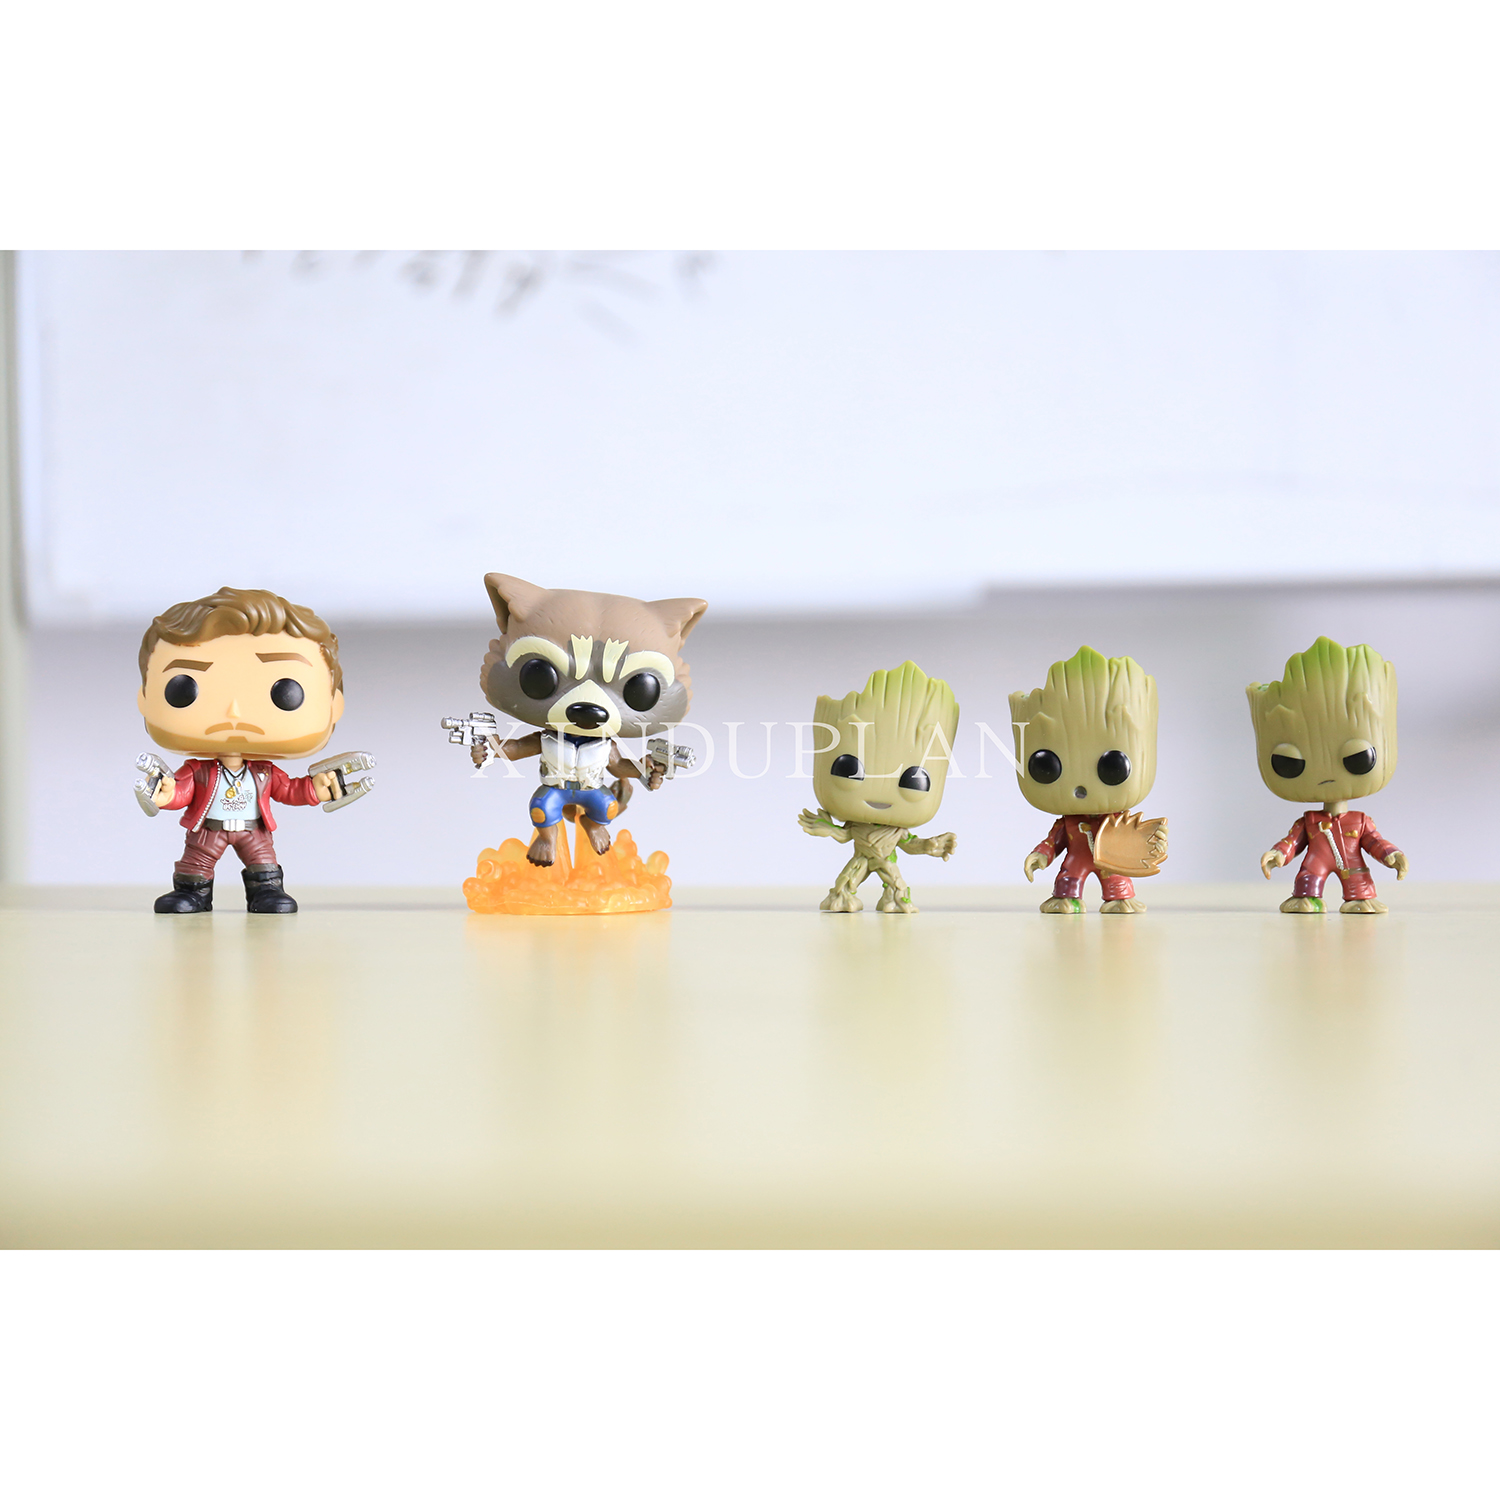 XINDUPLAN Funko pop Dance Groot Baby Star Lord Rocket Racoon Guardians of the Galaxy Vol 2 Action Figure Toy PVC Model Gift 0947 new funko pop guardians of the galaxy tree people groot